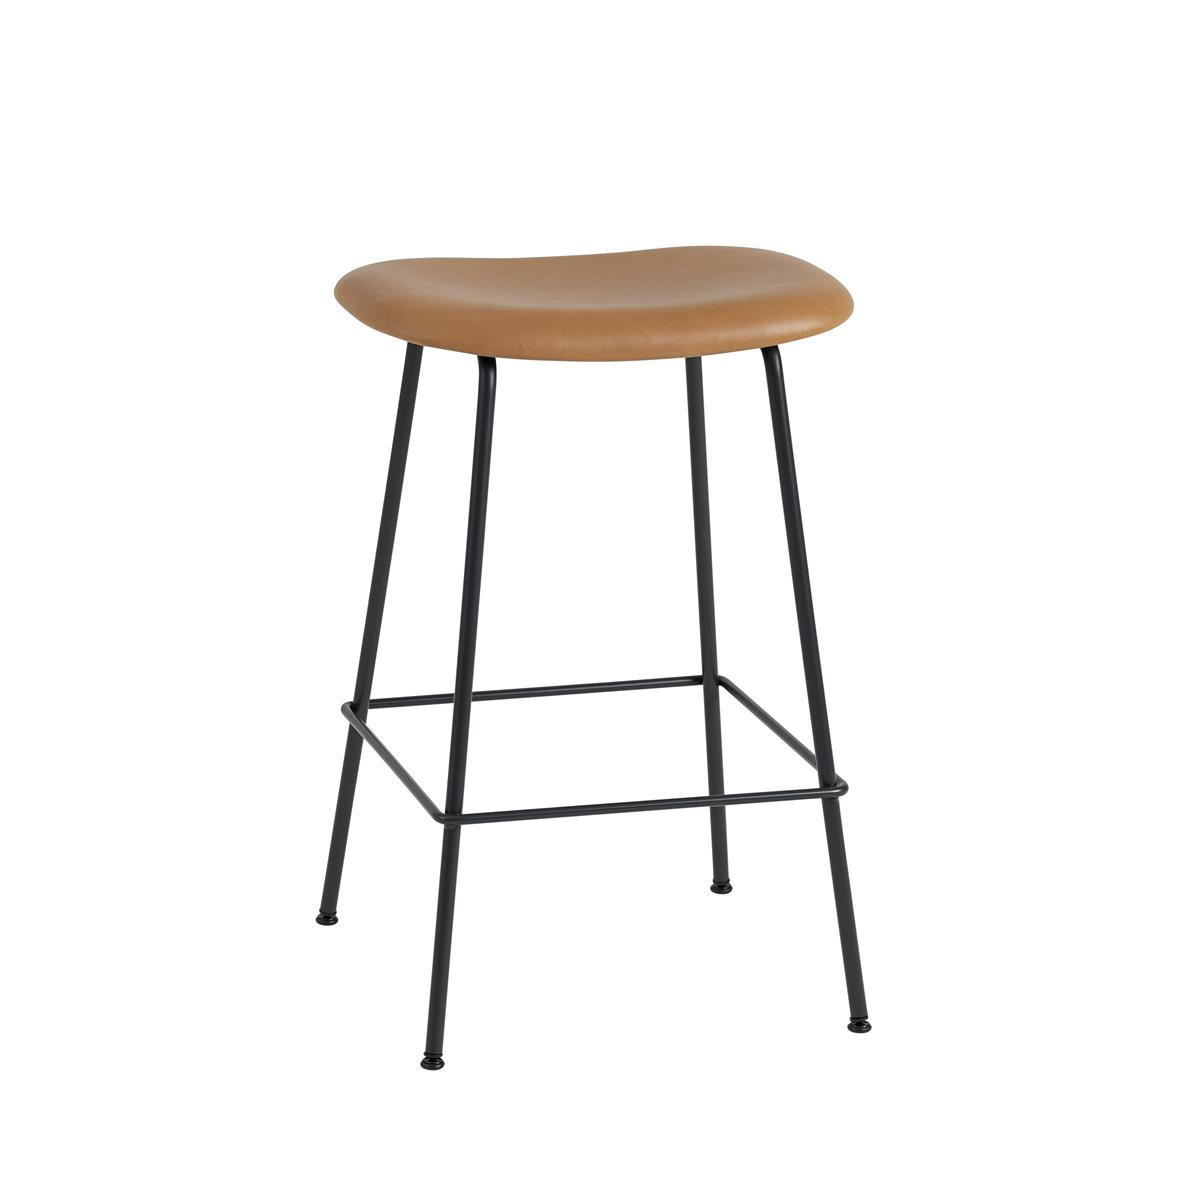 Fiber Bar Stool / Tube Base H65 - Cognac Silk Leather & Black